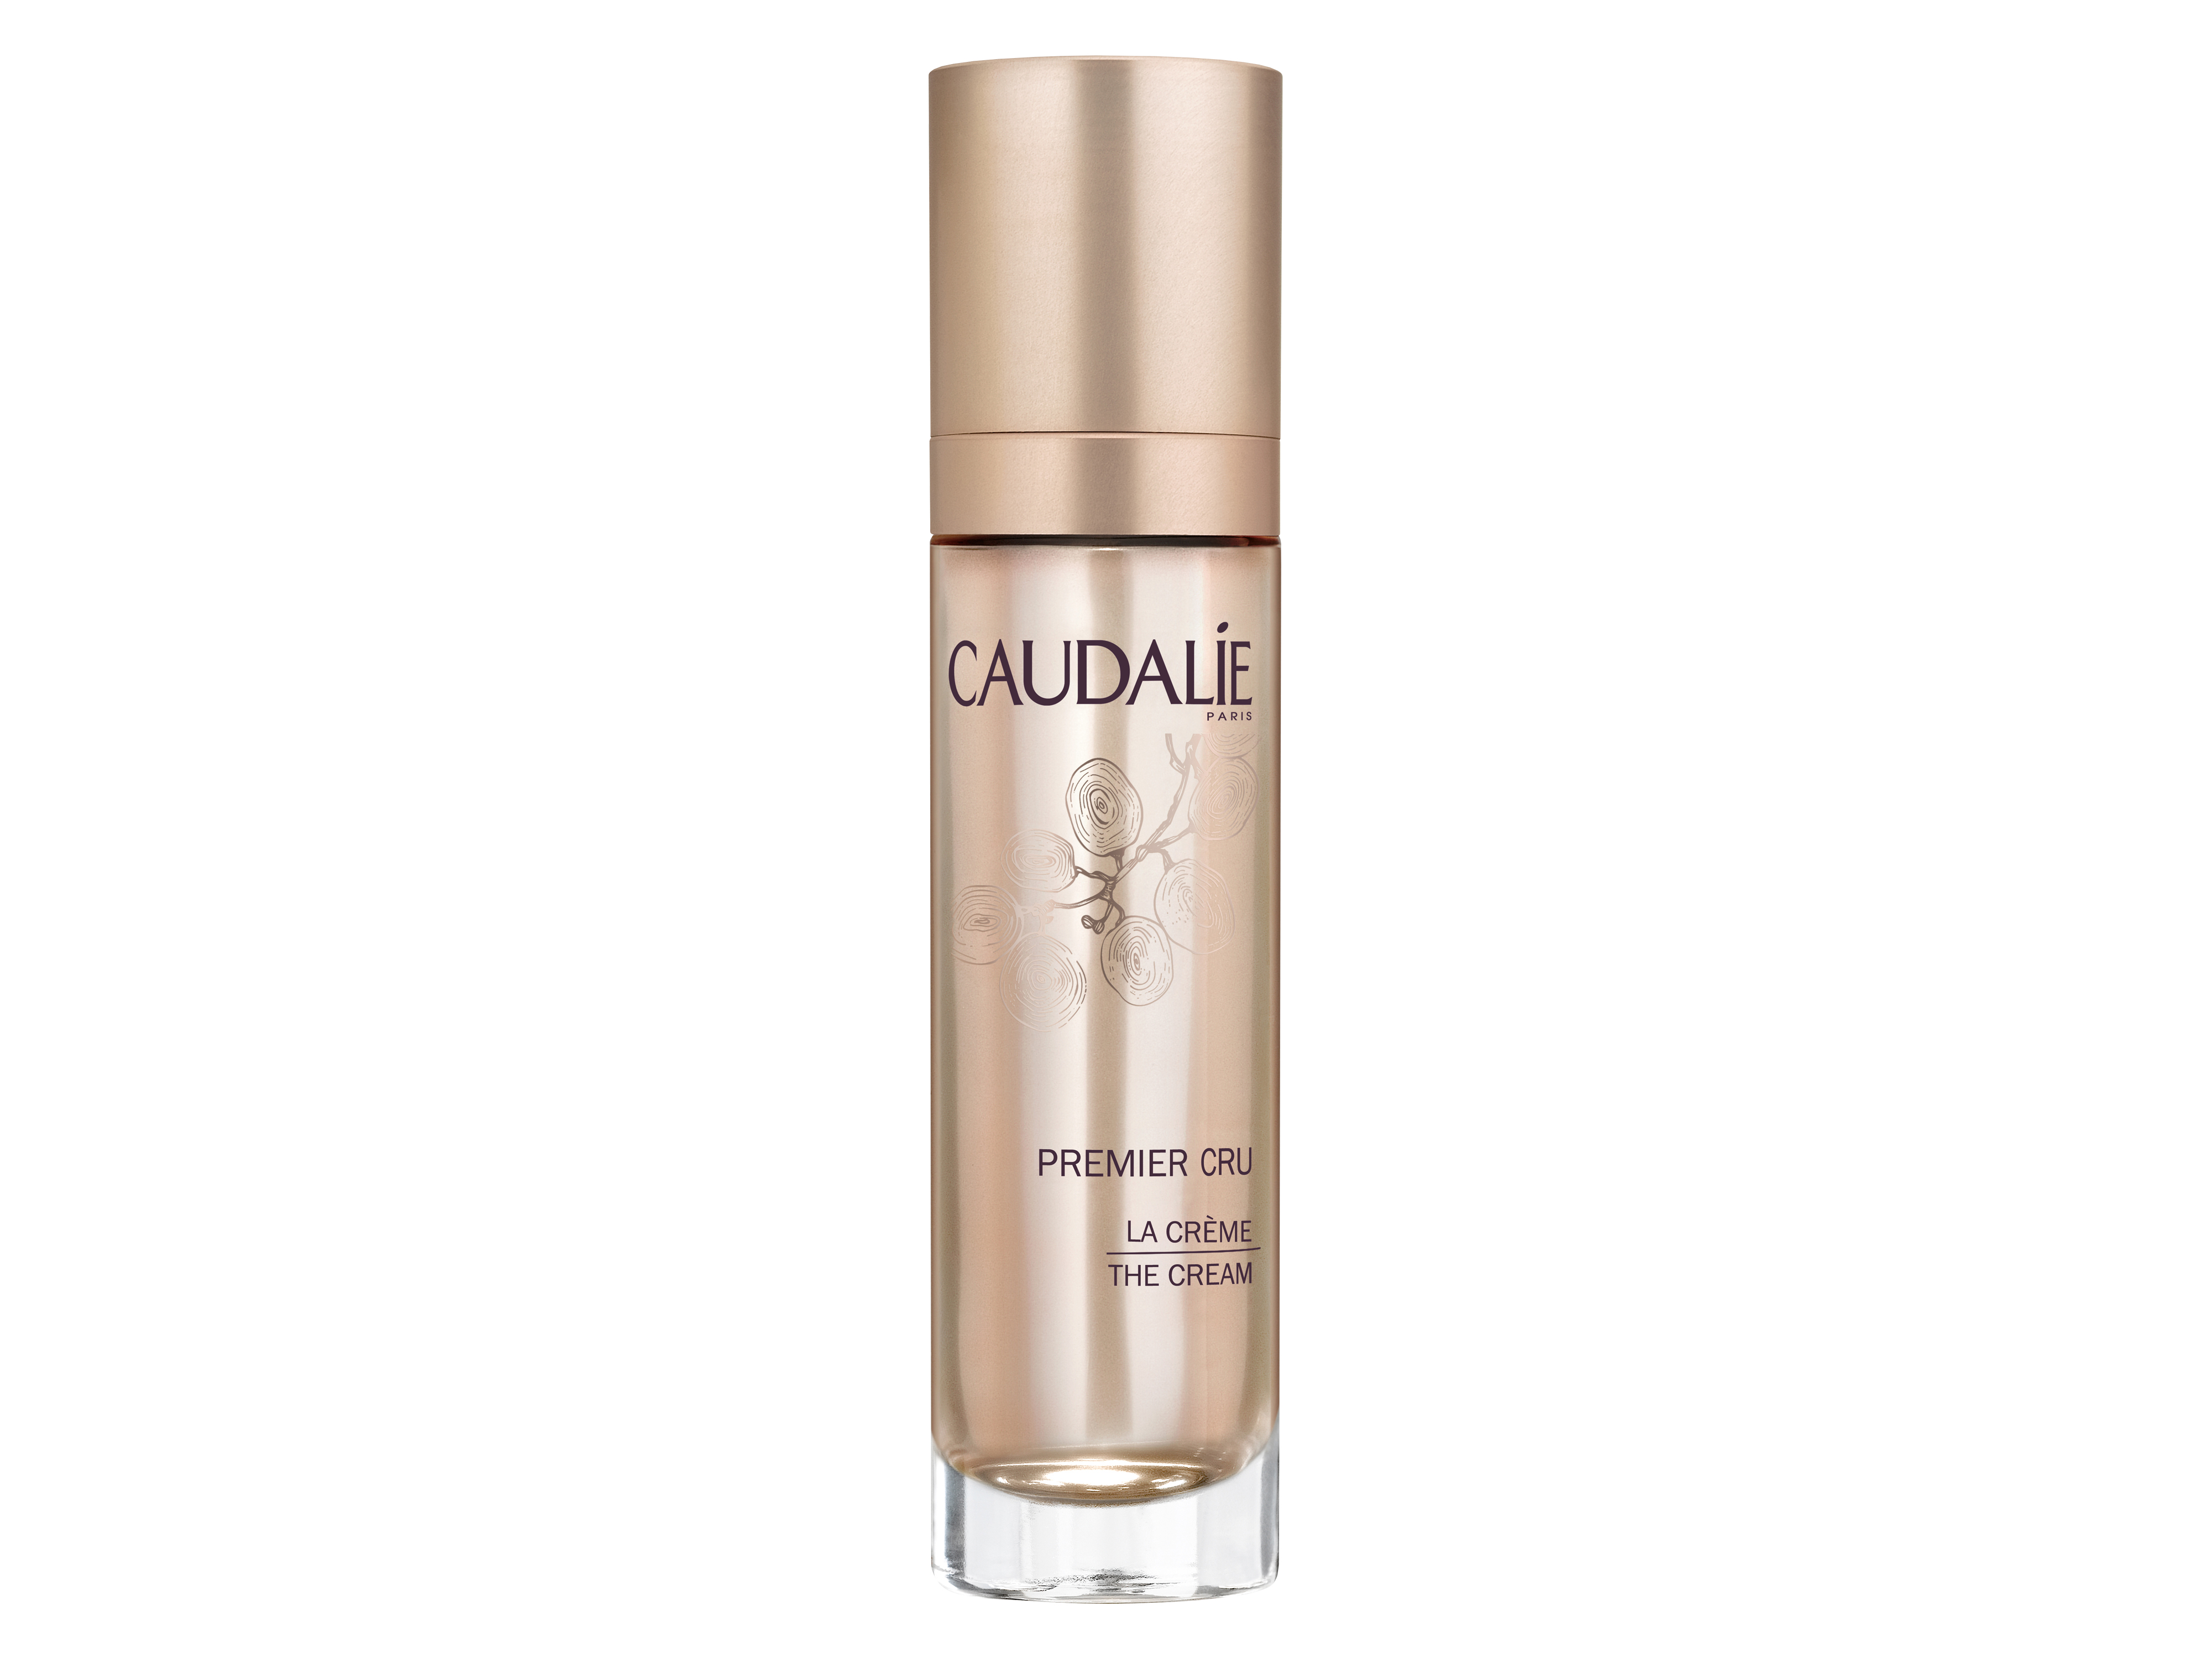 Caudalie Premier Cru The Cream, 50 ml